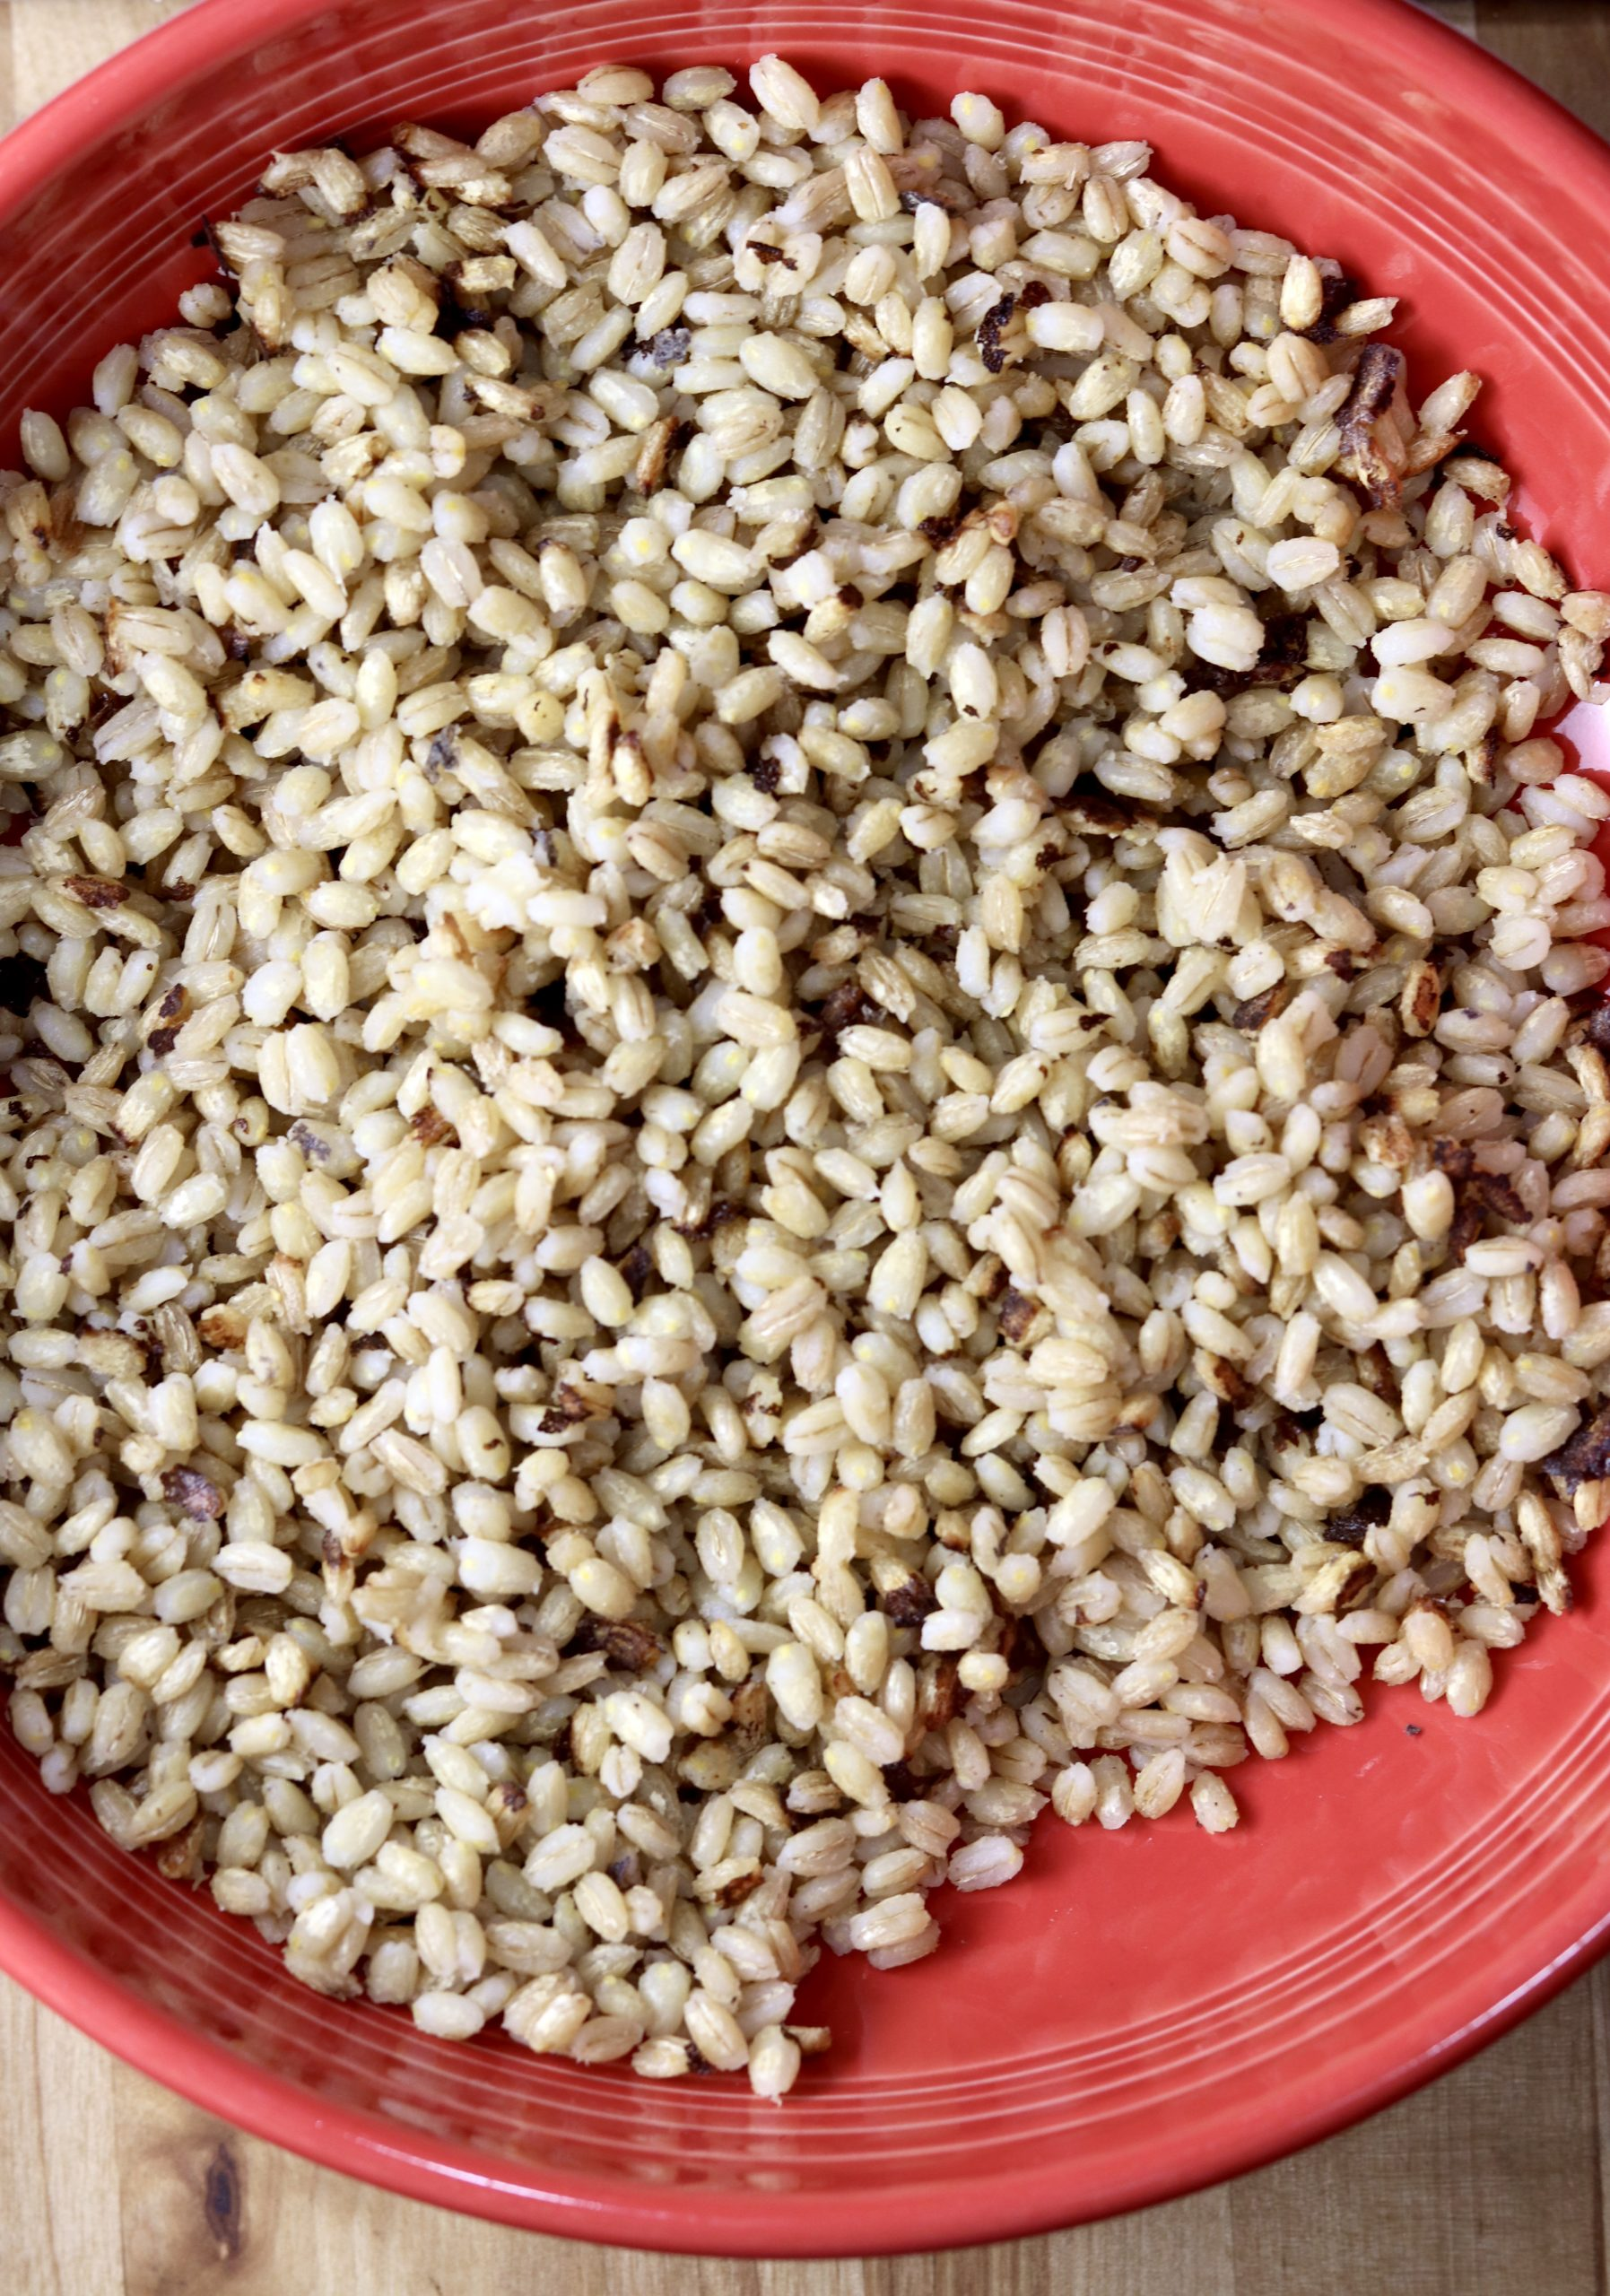 Cooked pearl barley in a red bowl